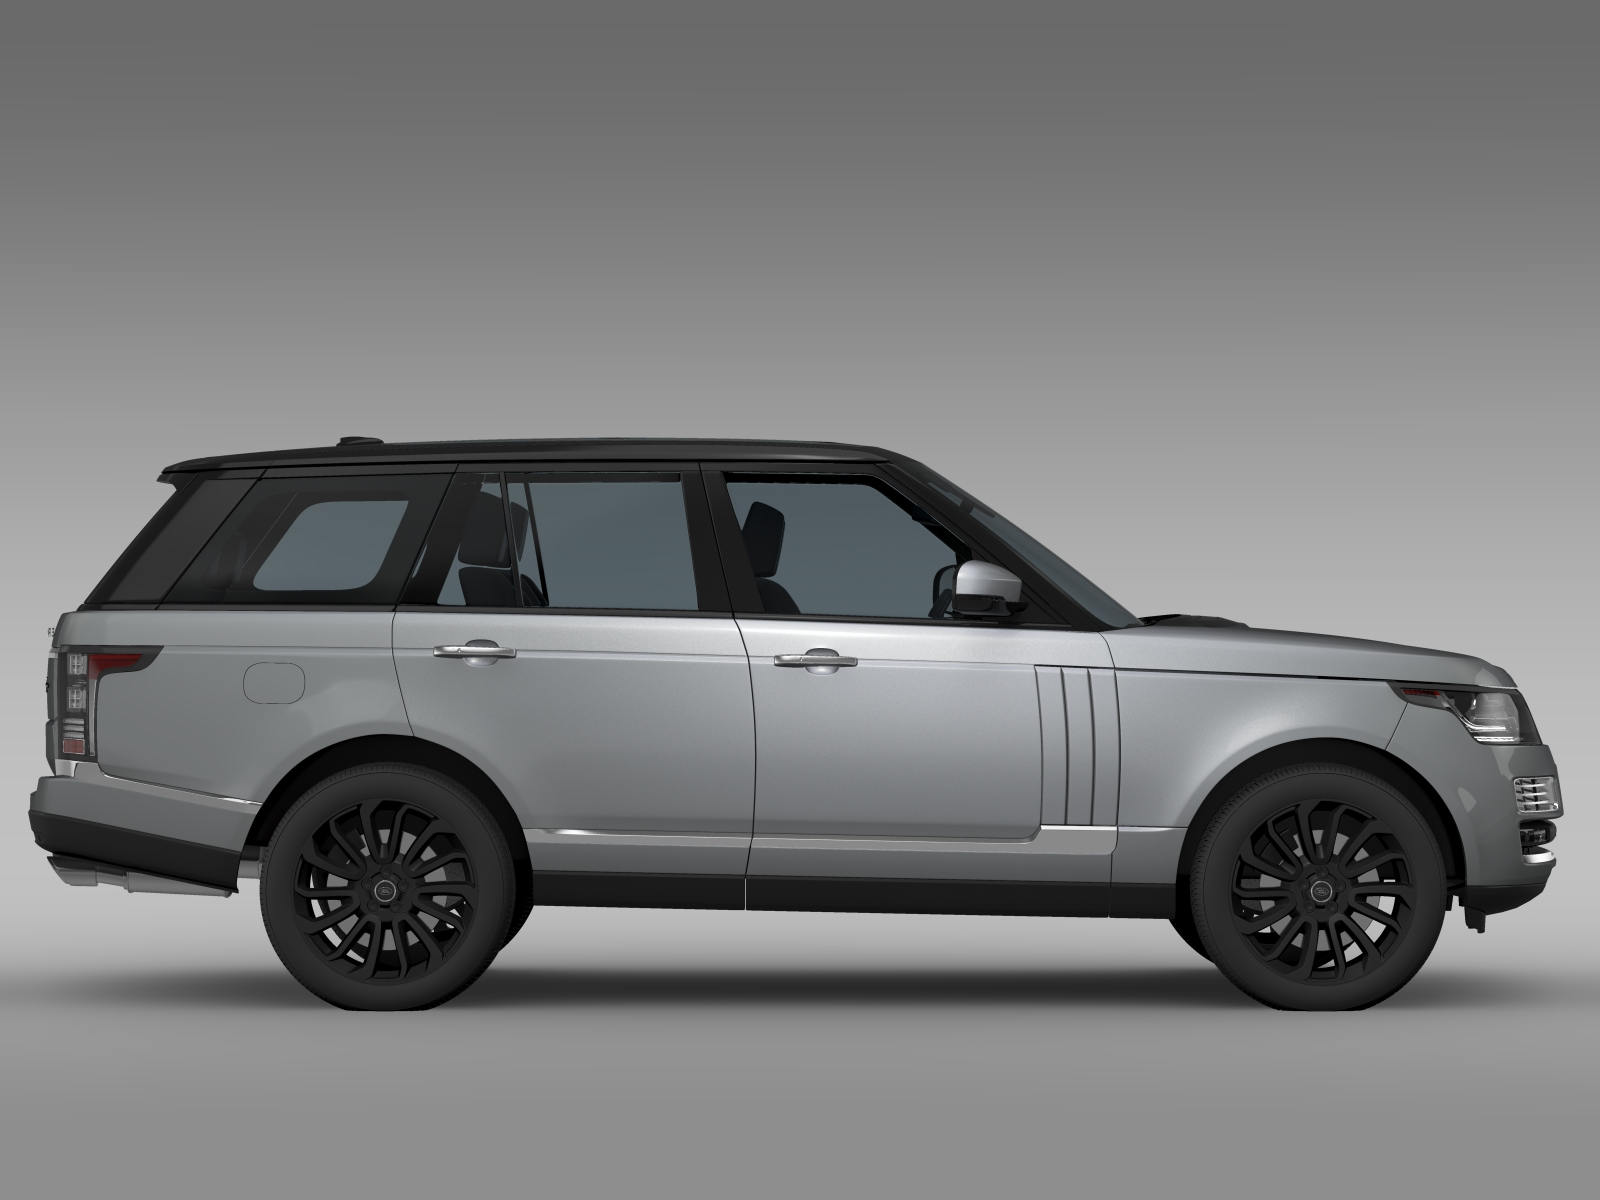 range rover svautobiography l405 2016 v1 3d model buy range rover svautobiography l405 2016 v1. Black Bedroom Furniture Sets. Home Design Ideas